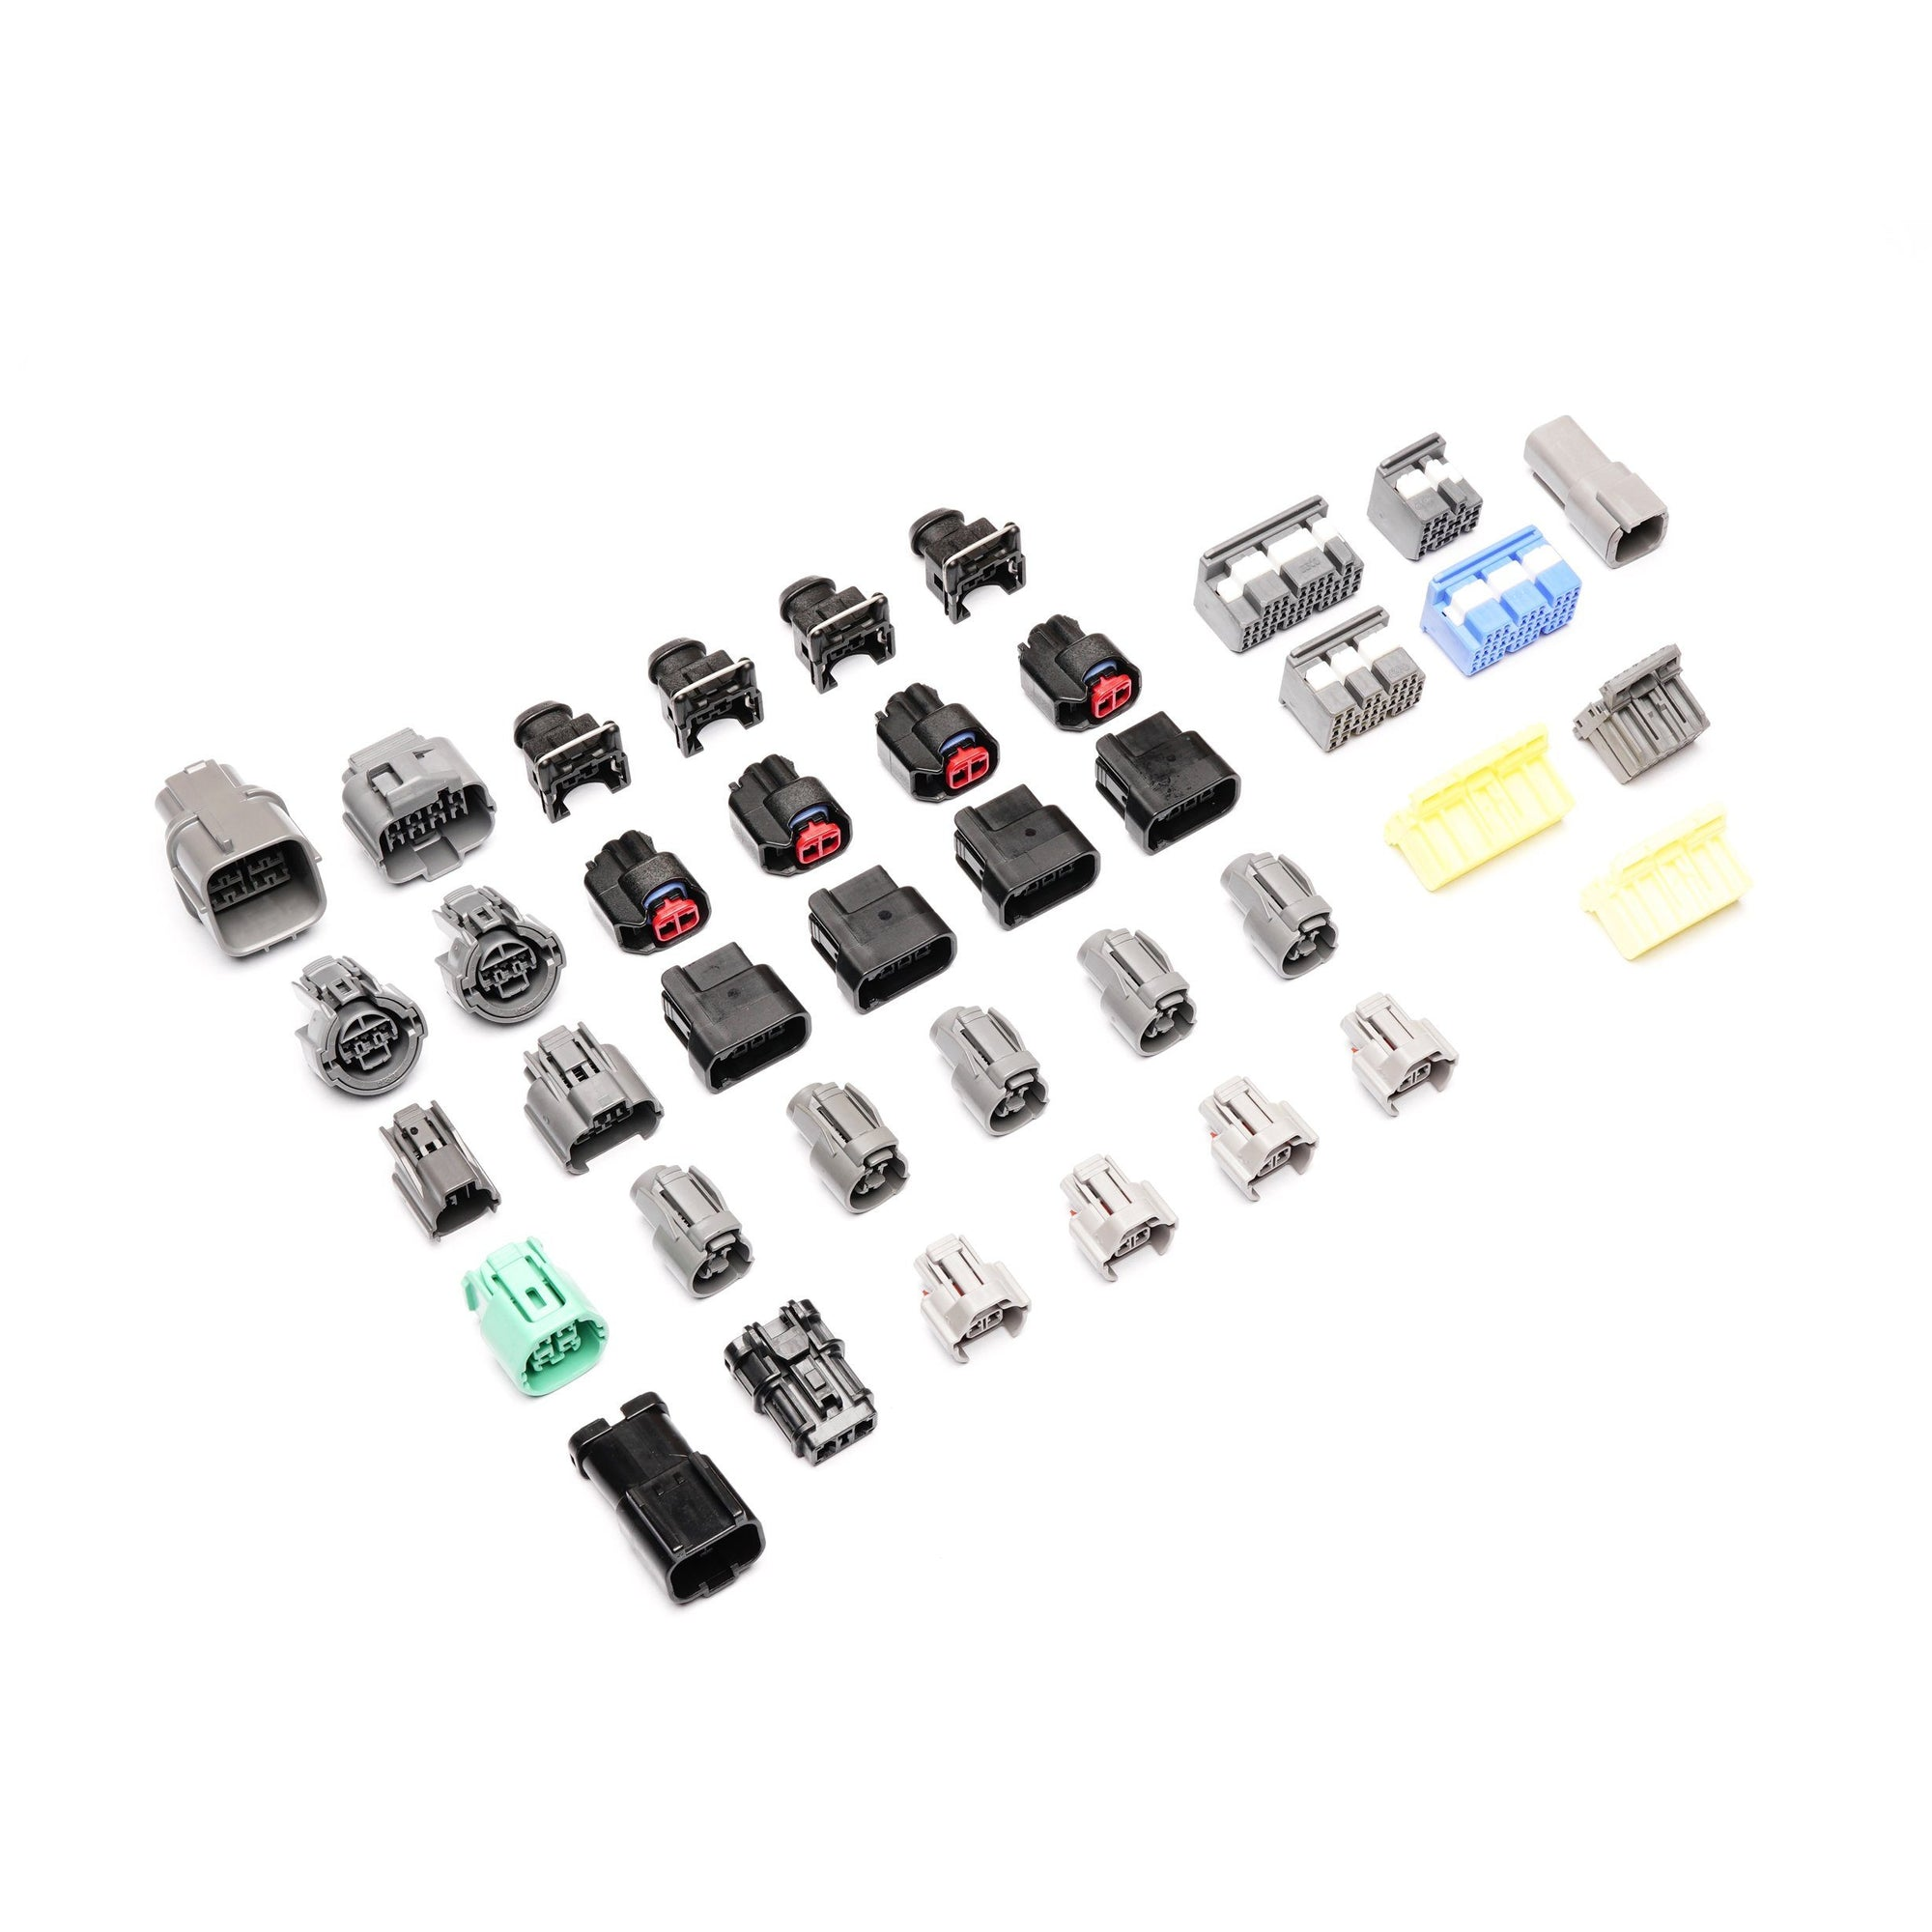 Connectors - OEM Honda Engine Connector Kit